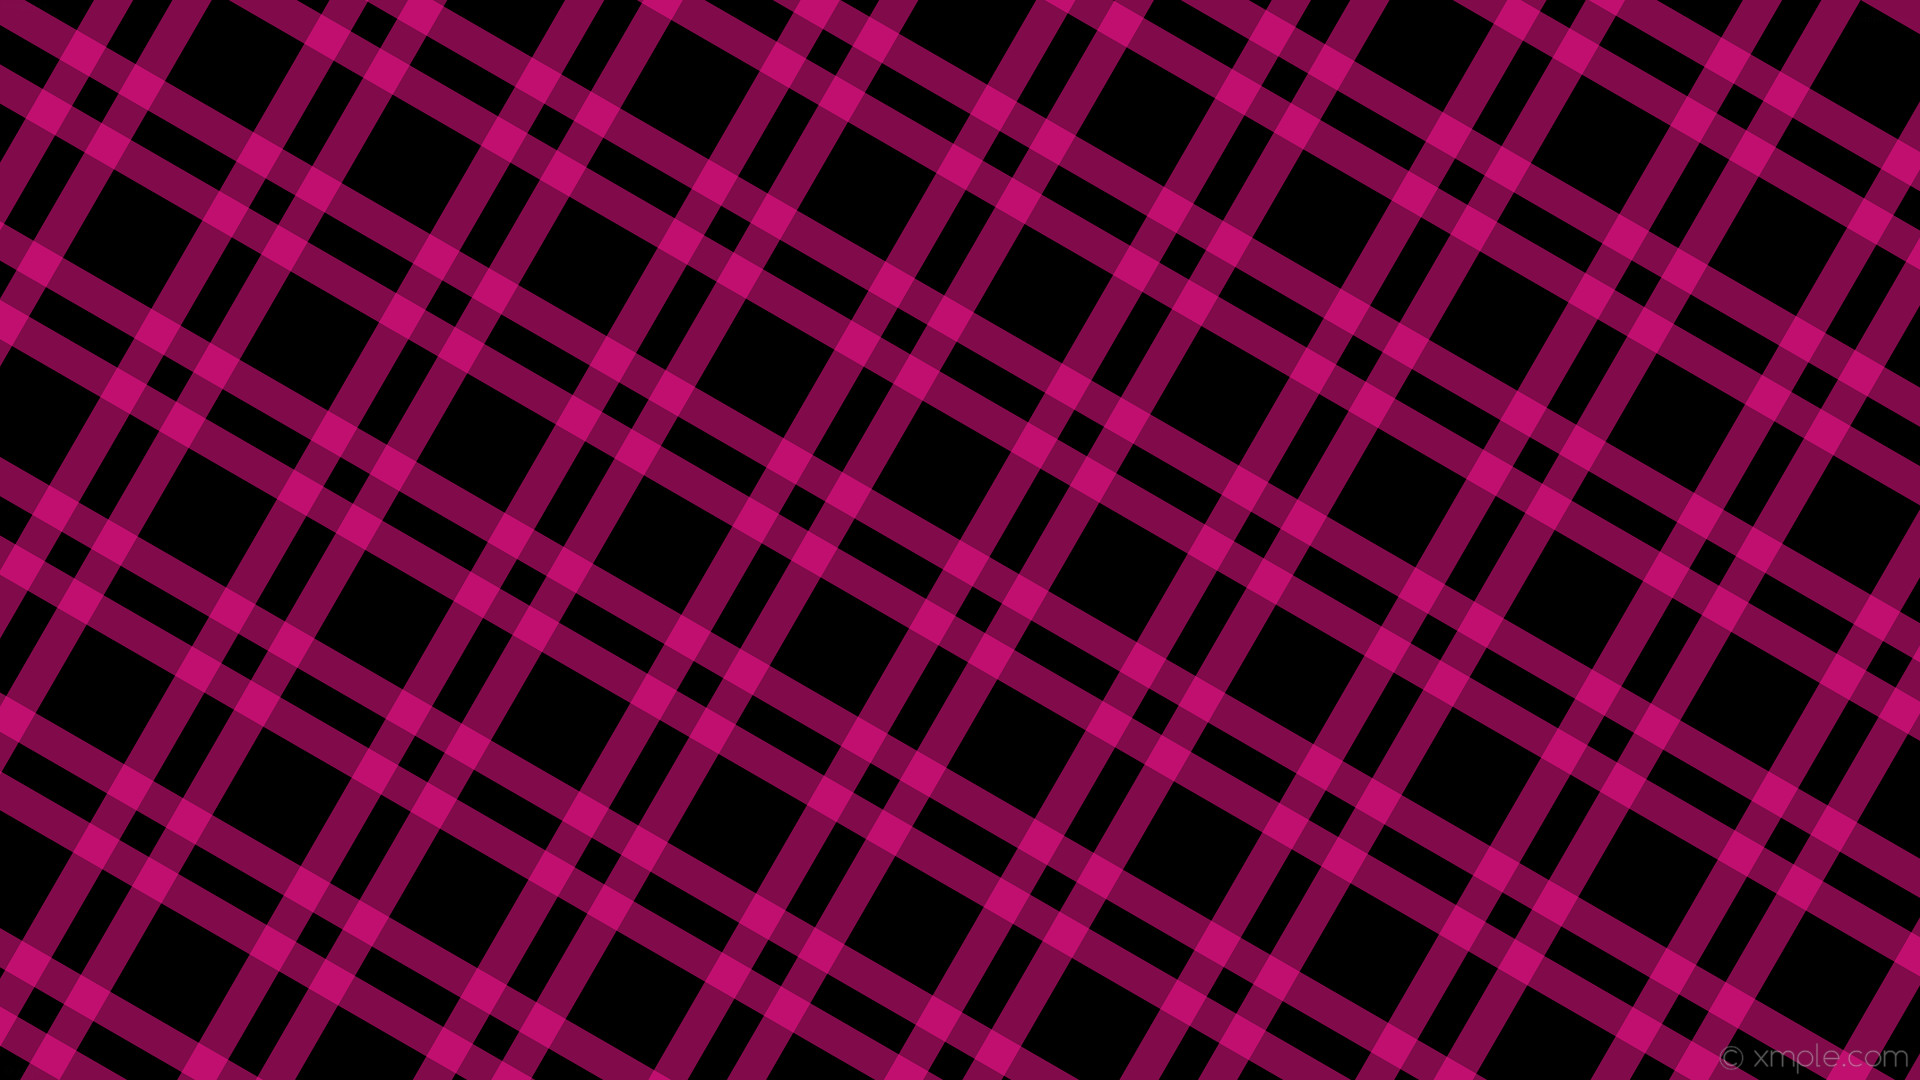 wallpaper striped dual pink gingham black deep pink #000000 #ff1493 330°  34px